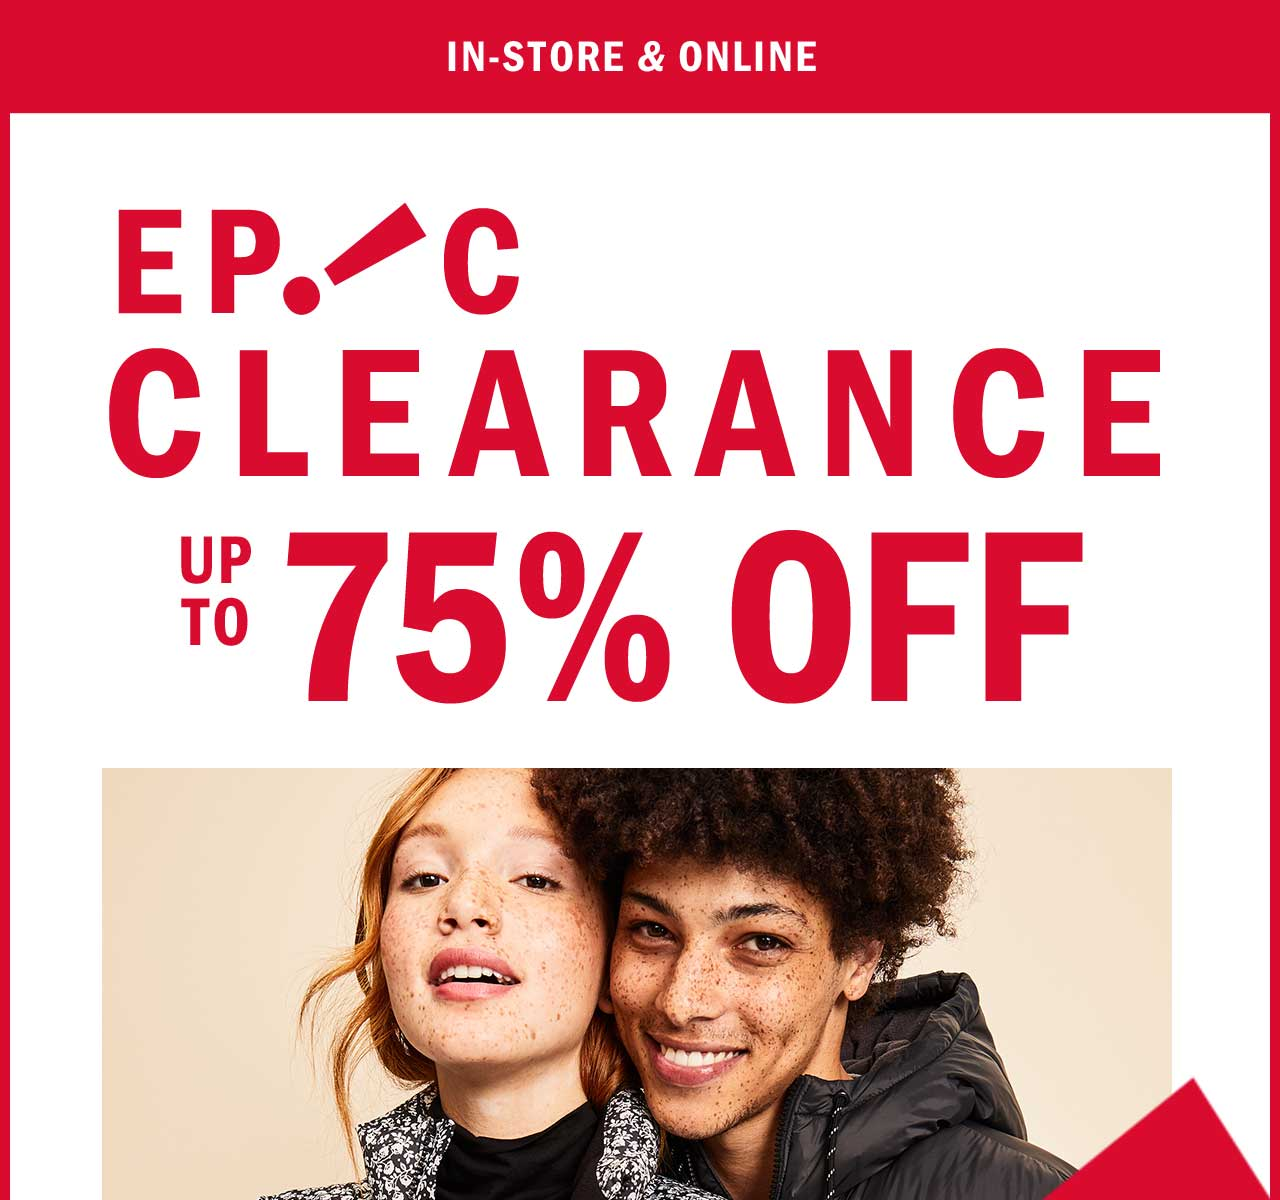 Ep!c clearance